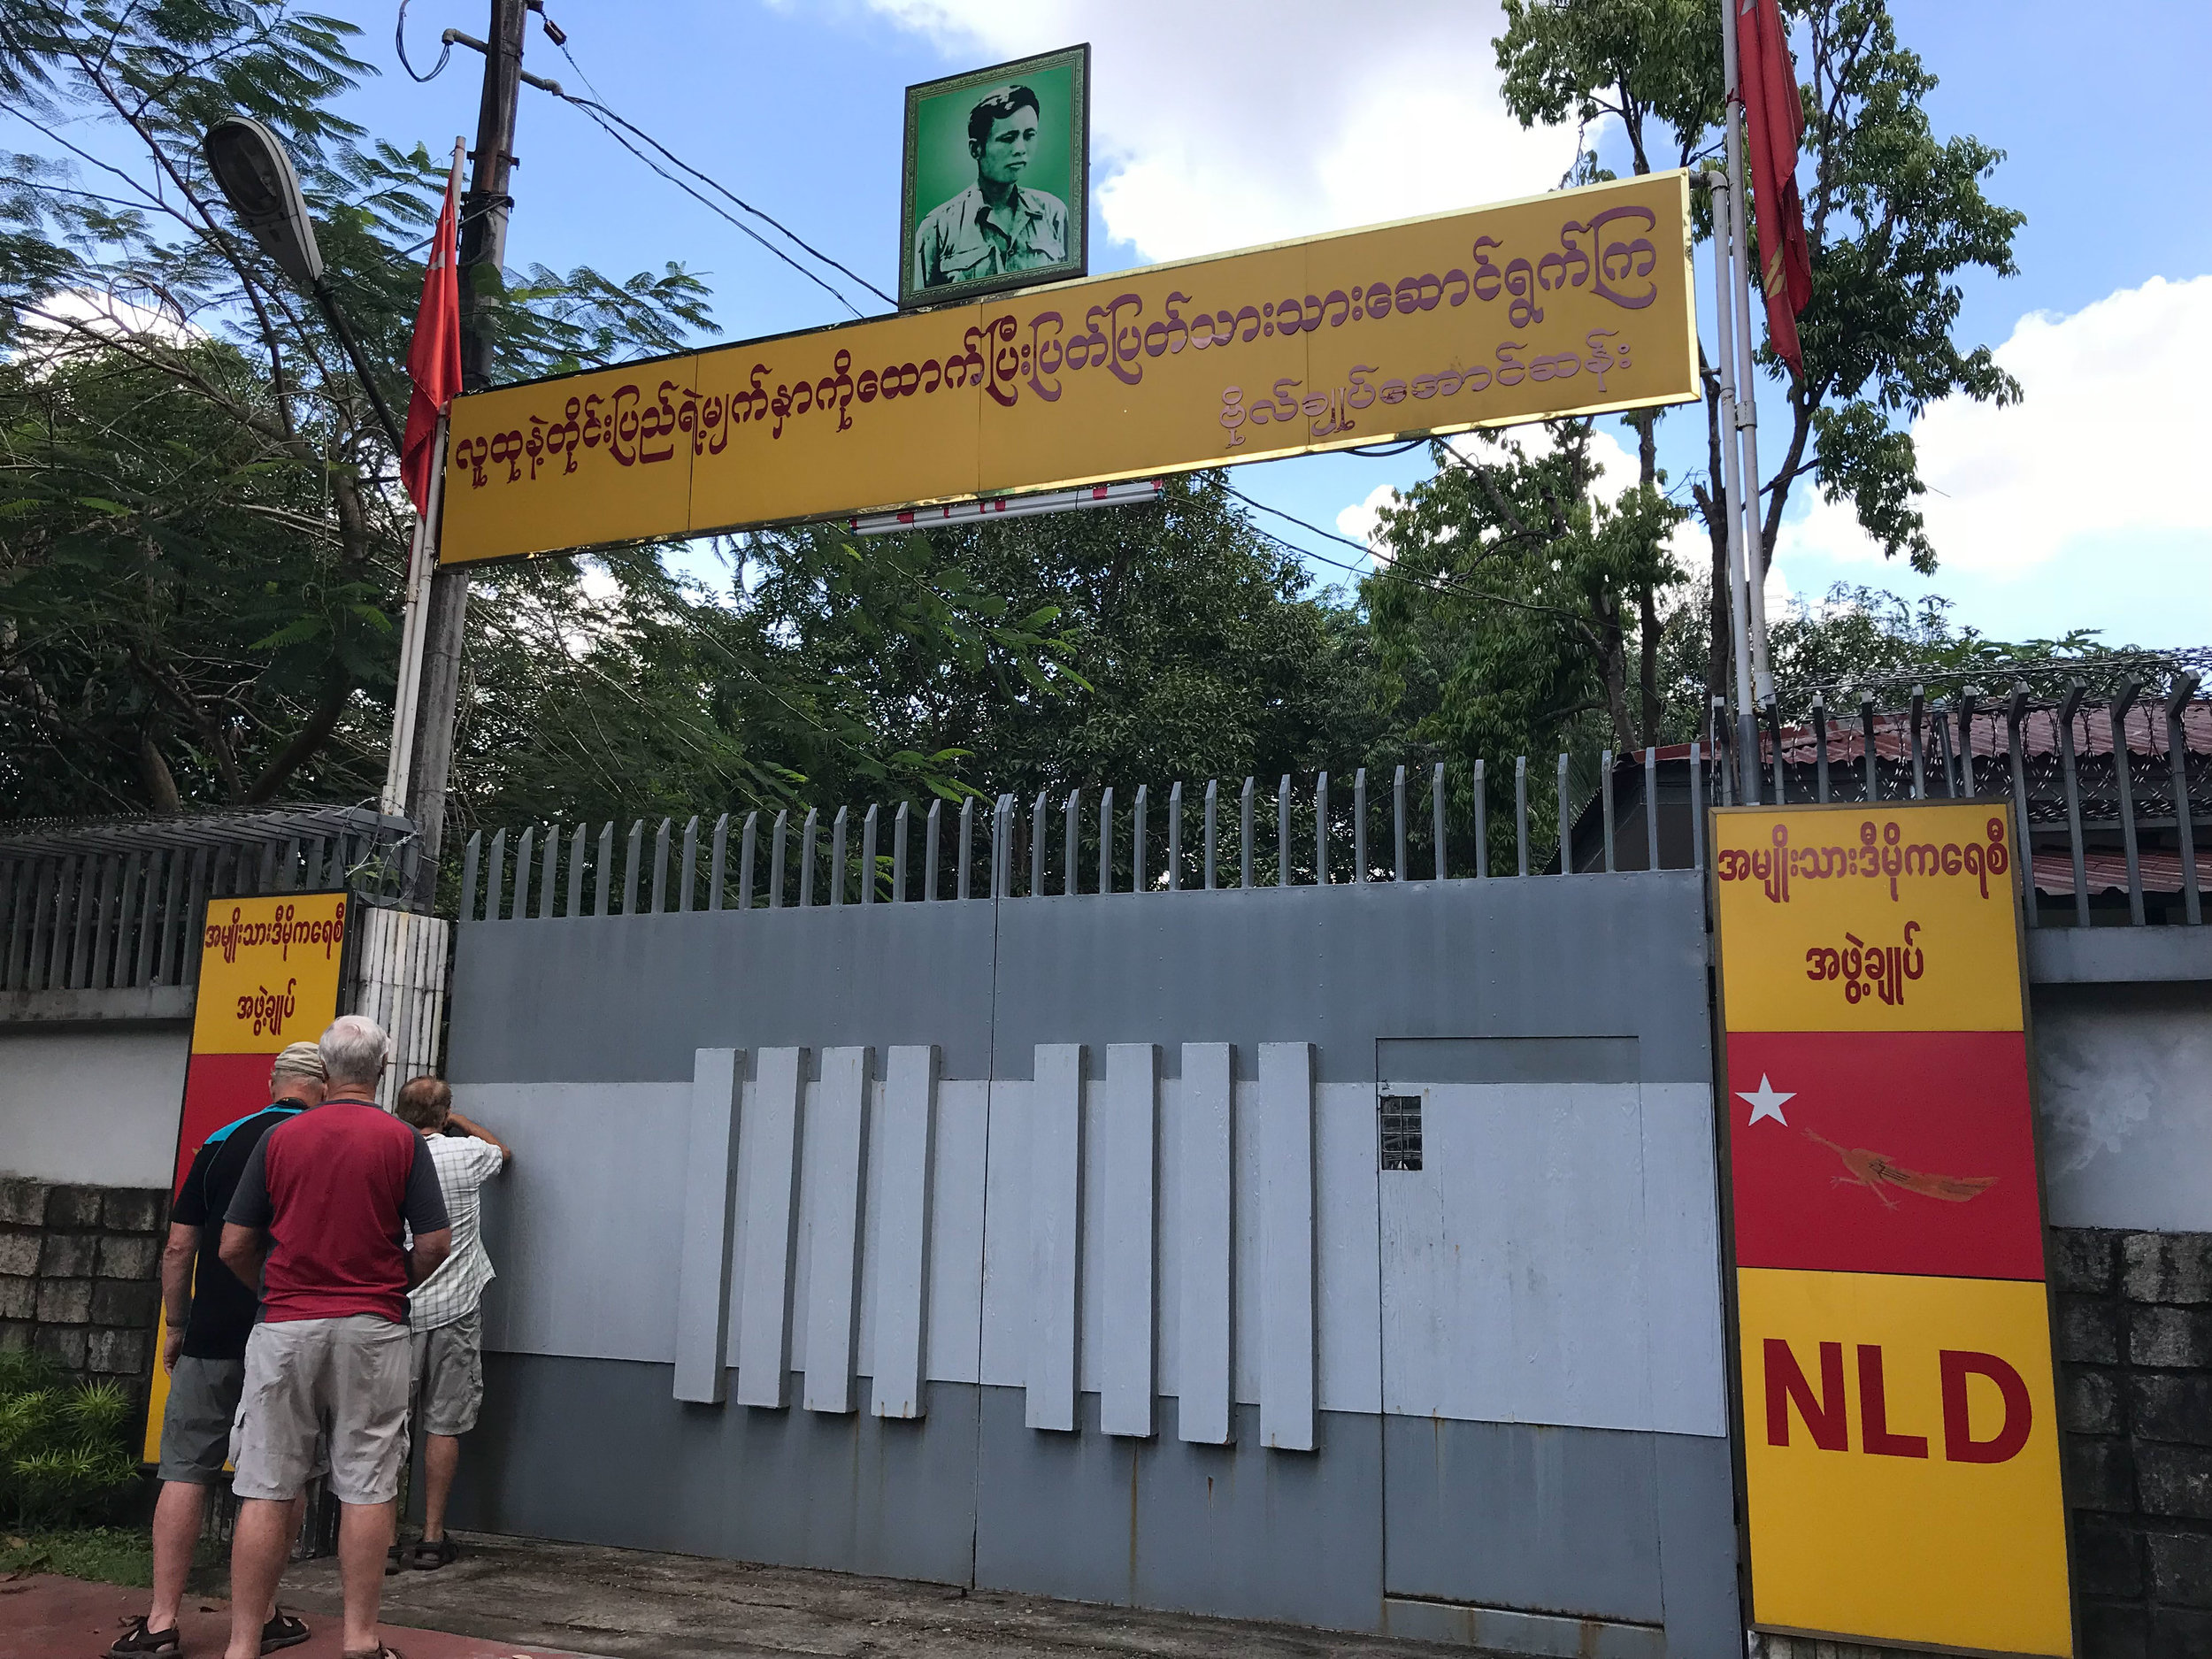 House where Aung San Suu Kyi was under house arrest, Yangon, Myanmar, 26 Nov 2017.jpg